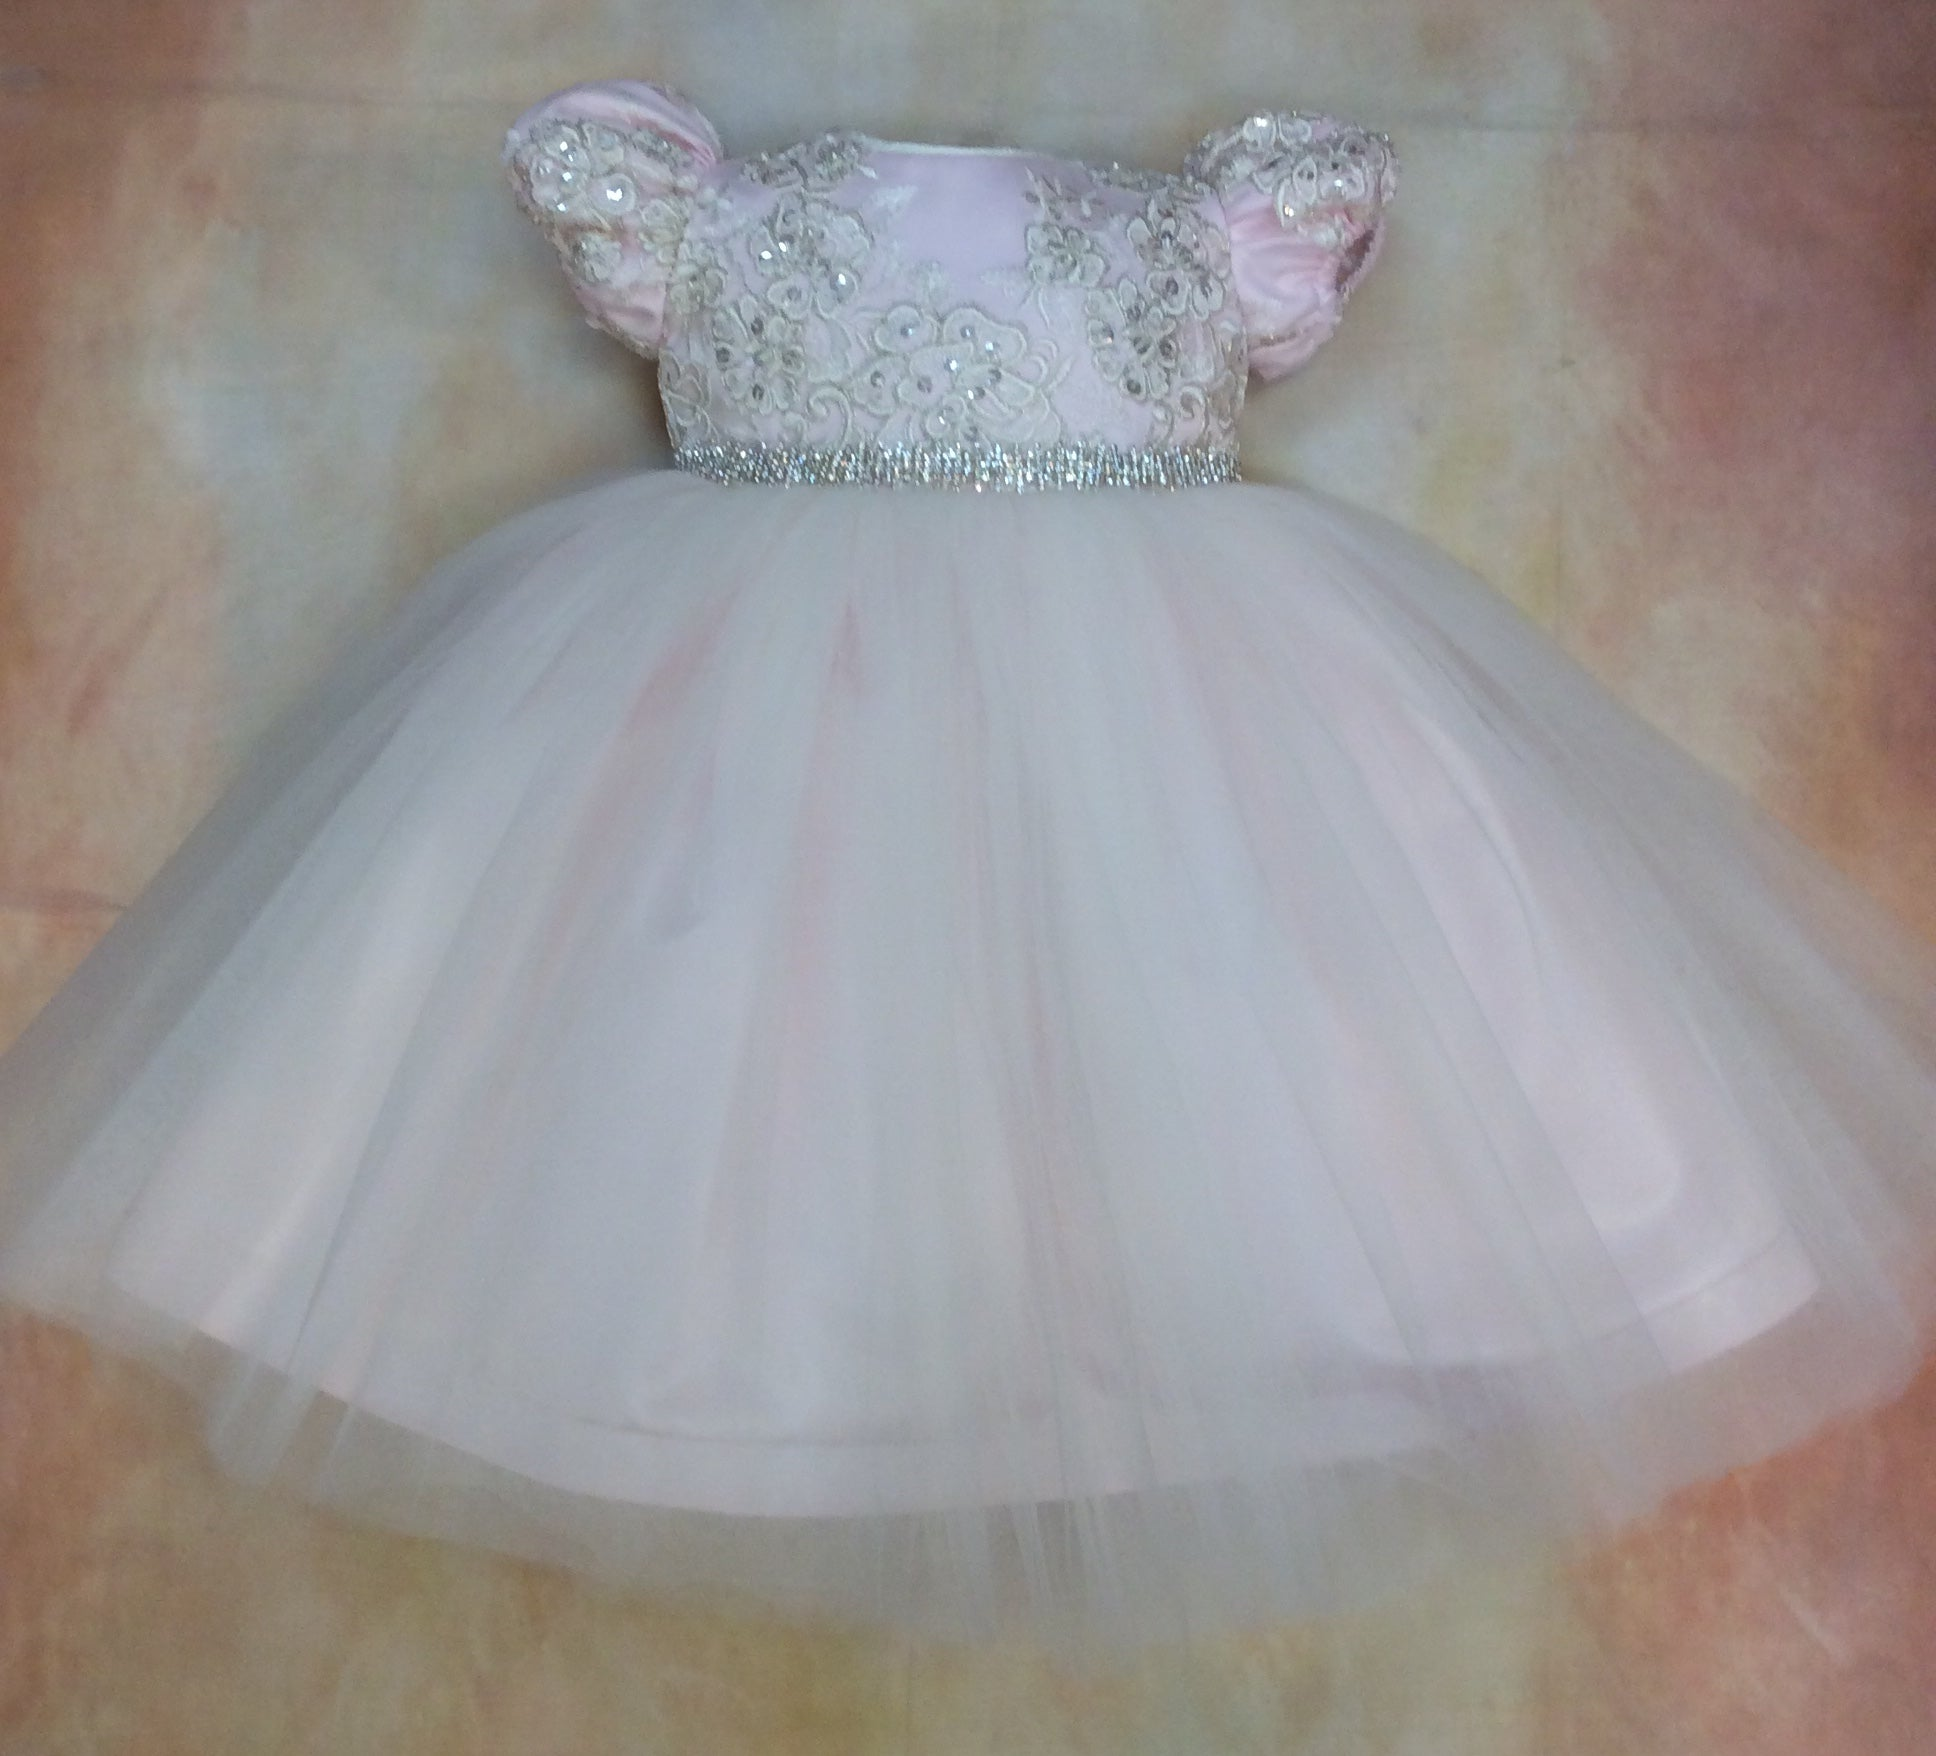 Heidi Girls Special Occasion/Party or Birthday Dress by Piccolo Bacio - Nenes Lullaby Boutique Inc